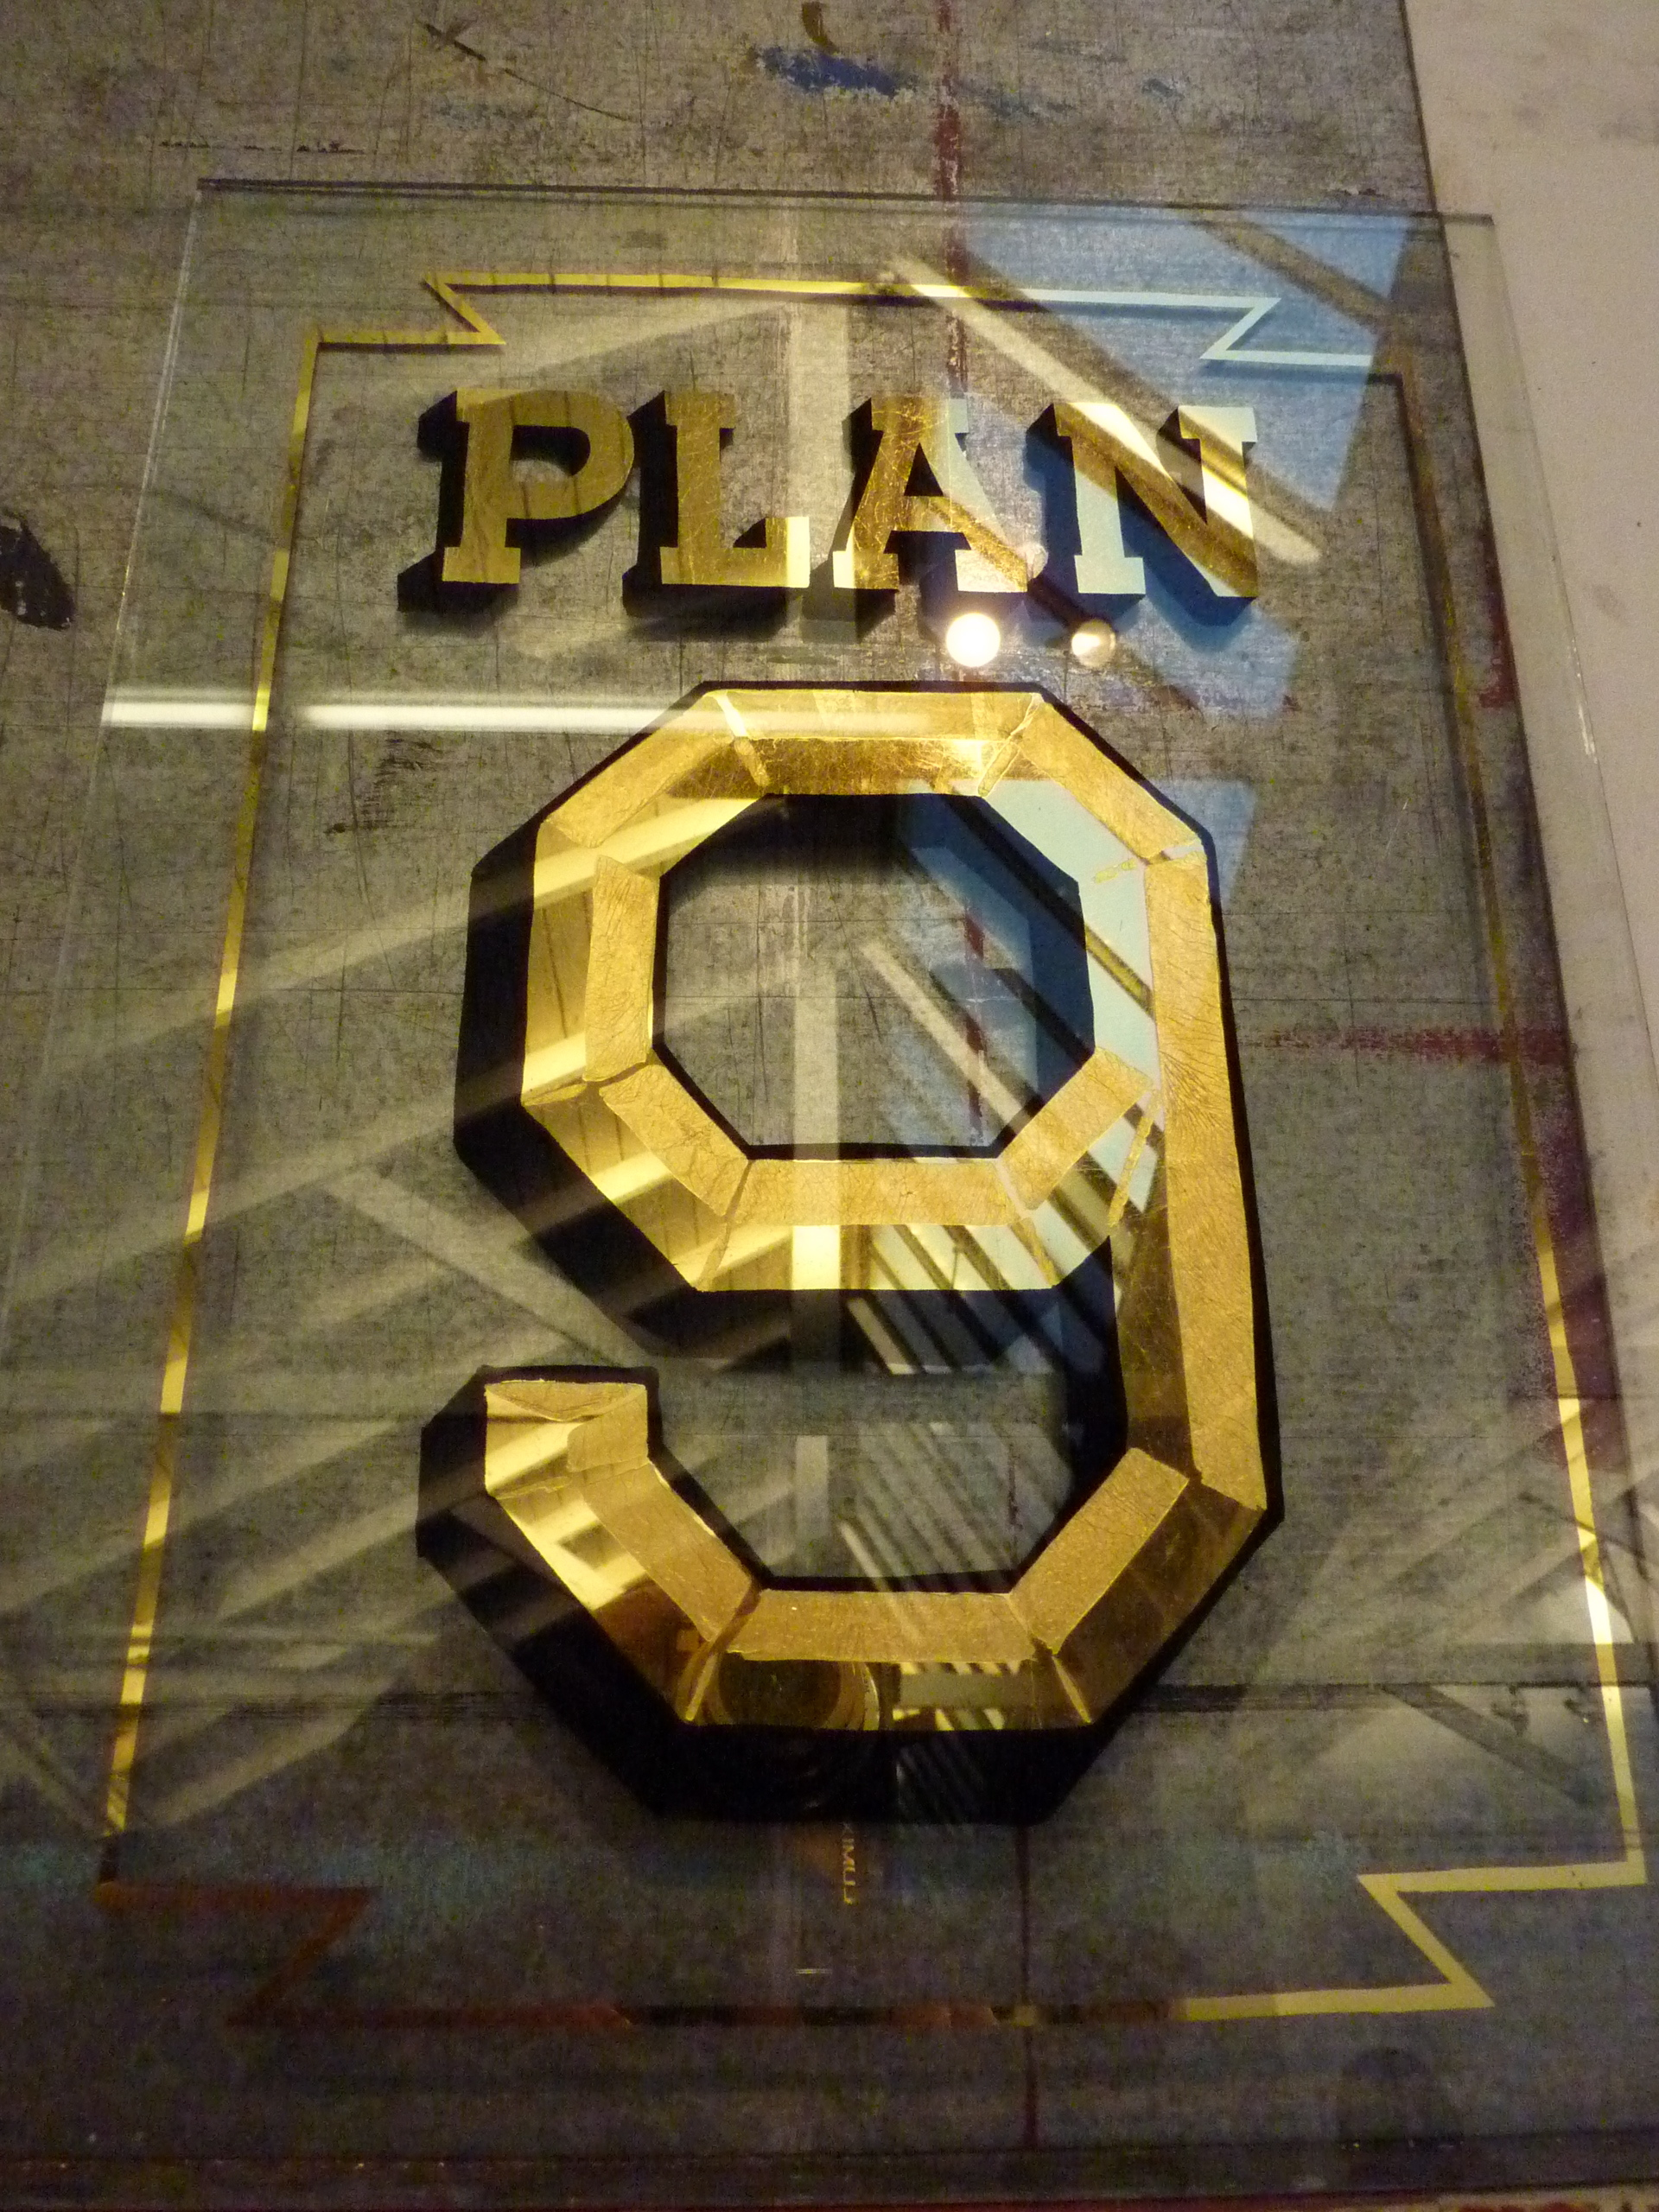 GOLD-plan-9-completed-in-the-evening-light-gilding-demo-guerrero-gallery-30-june-2011_5892528720_o.jpg